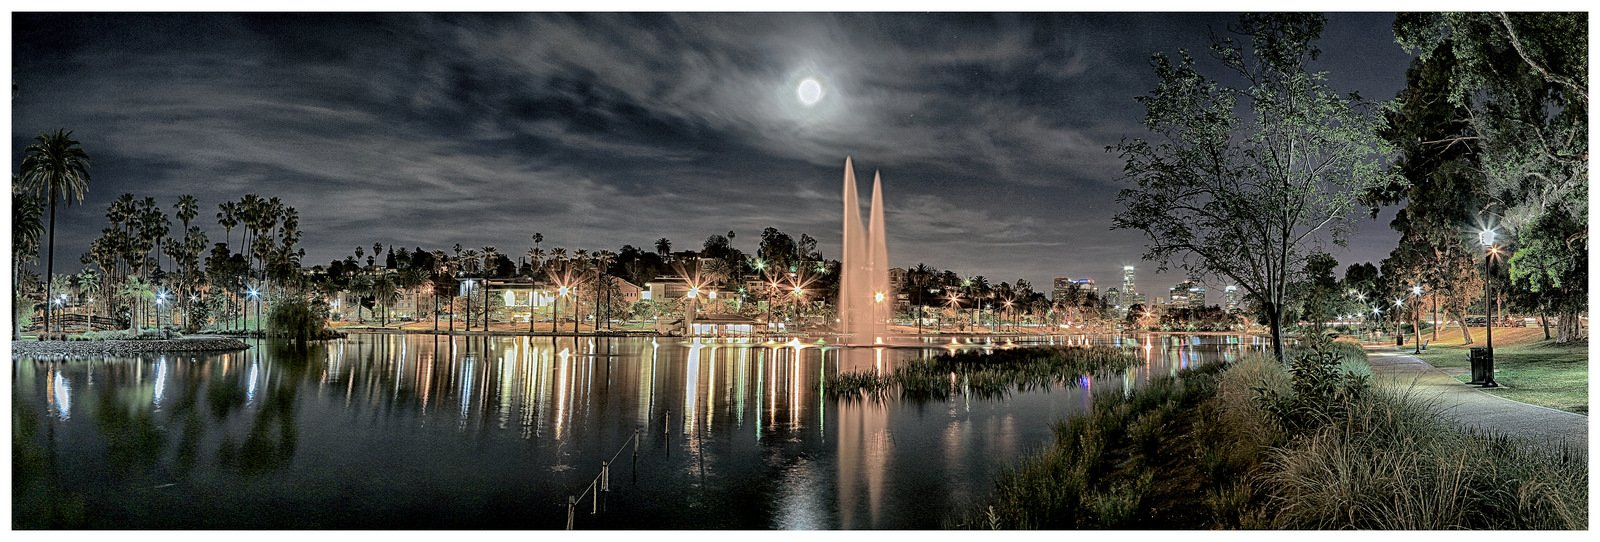 Echo Park, Los Angeles/ Richard Cawood